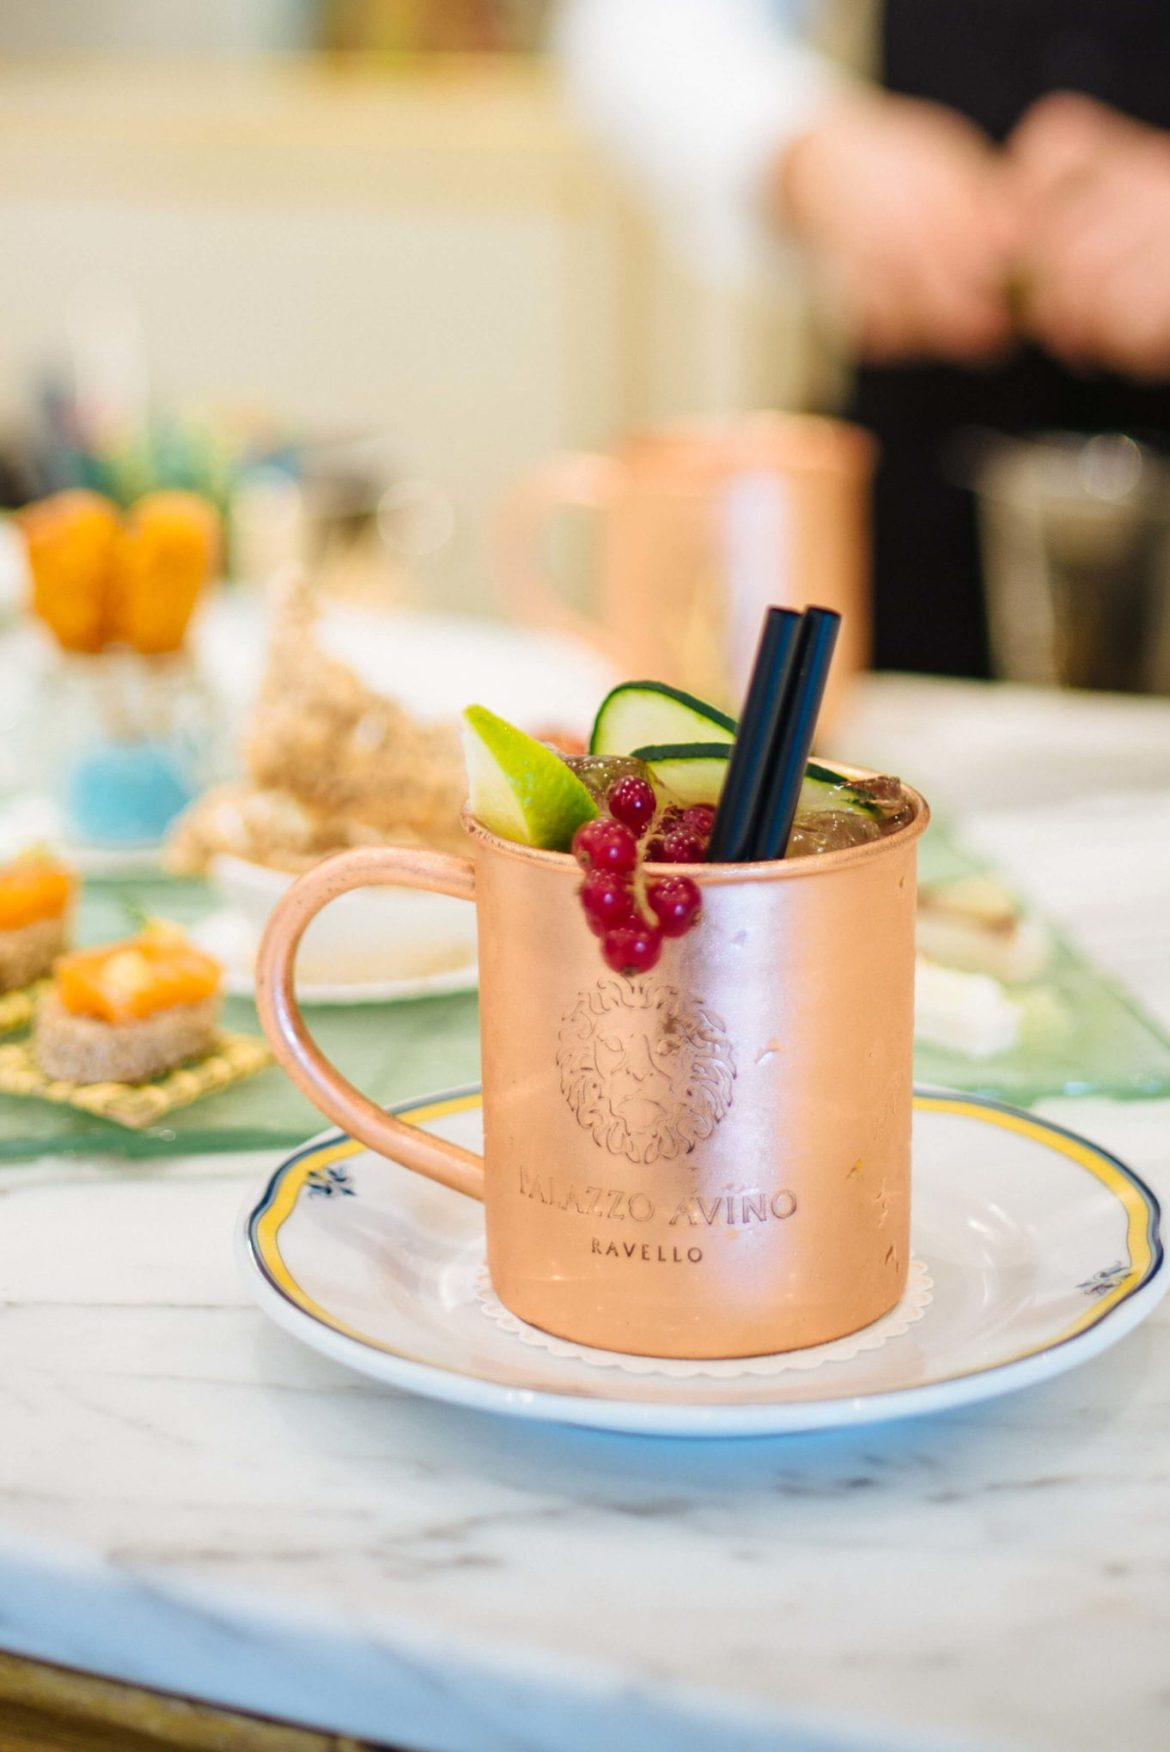 Moscow Mule Cocktail at Palazzo Avino's Lobster and Martini Bar in Ravello, Italy, The Taste Edit